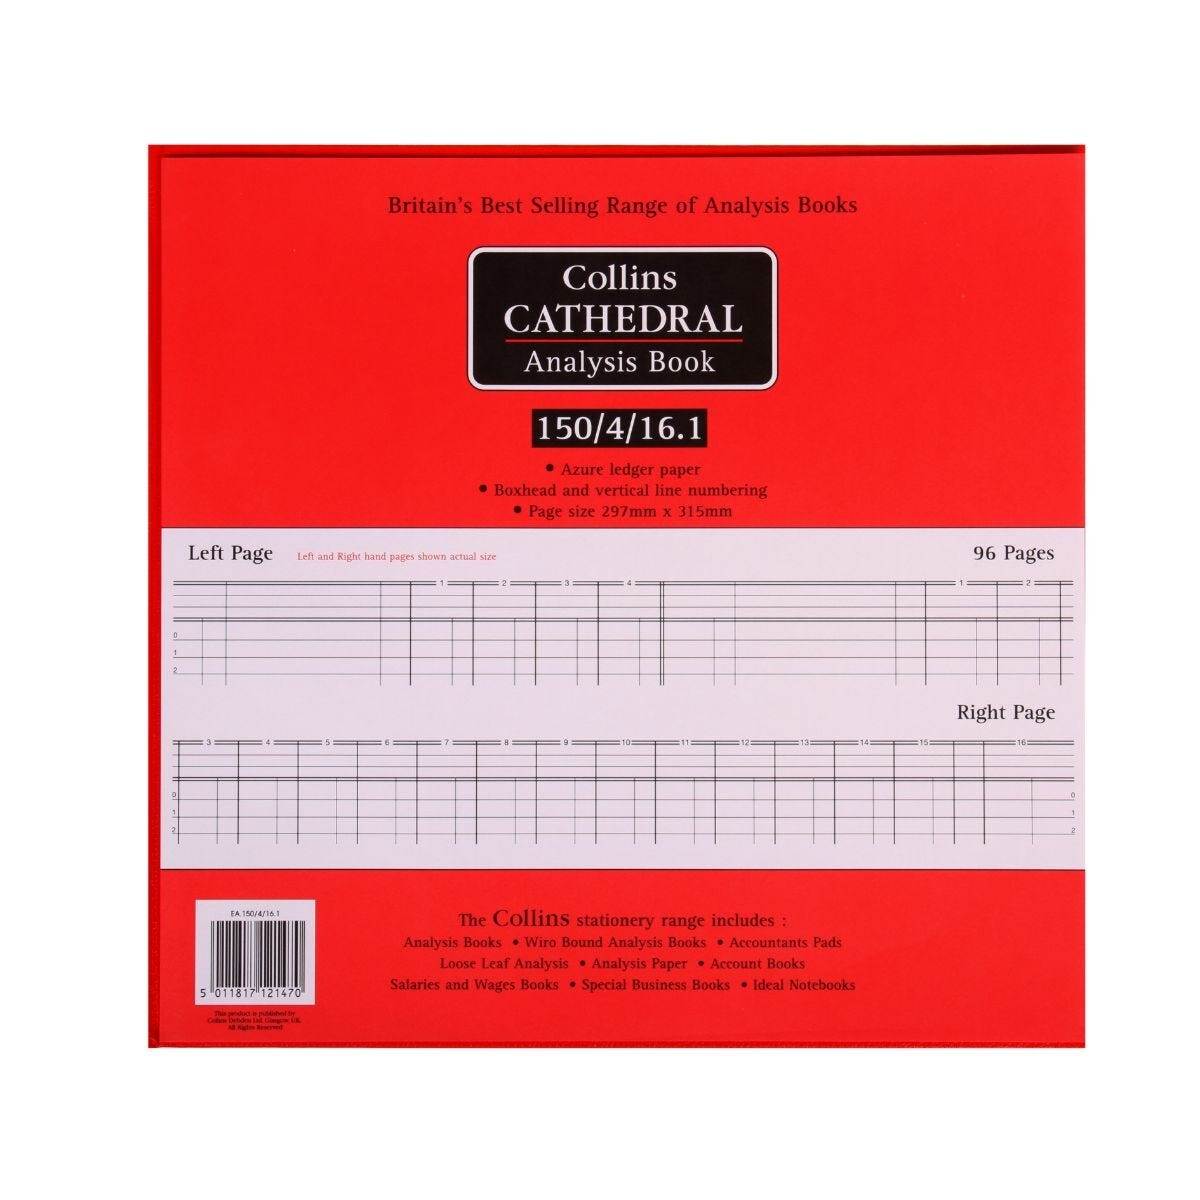 Collins Cathedral Analysis Book 150 Series 4 Debit 16 Credit 150/4/16